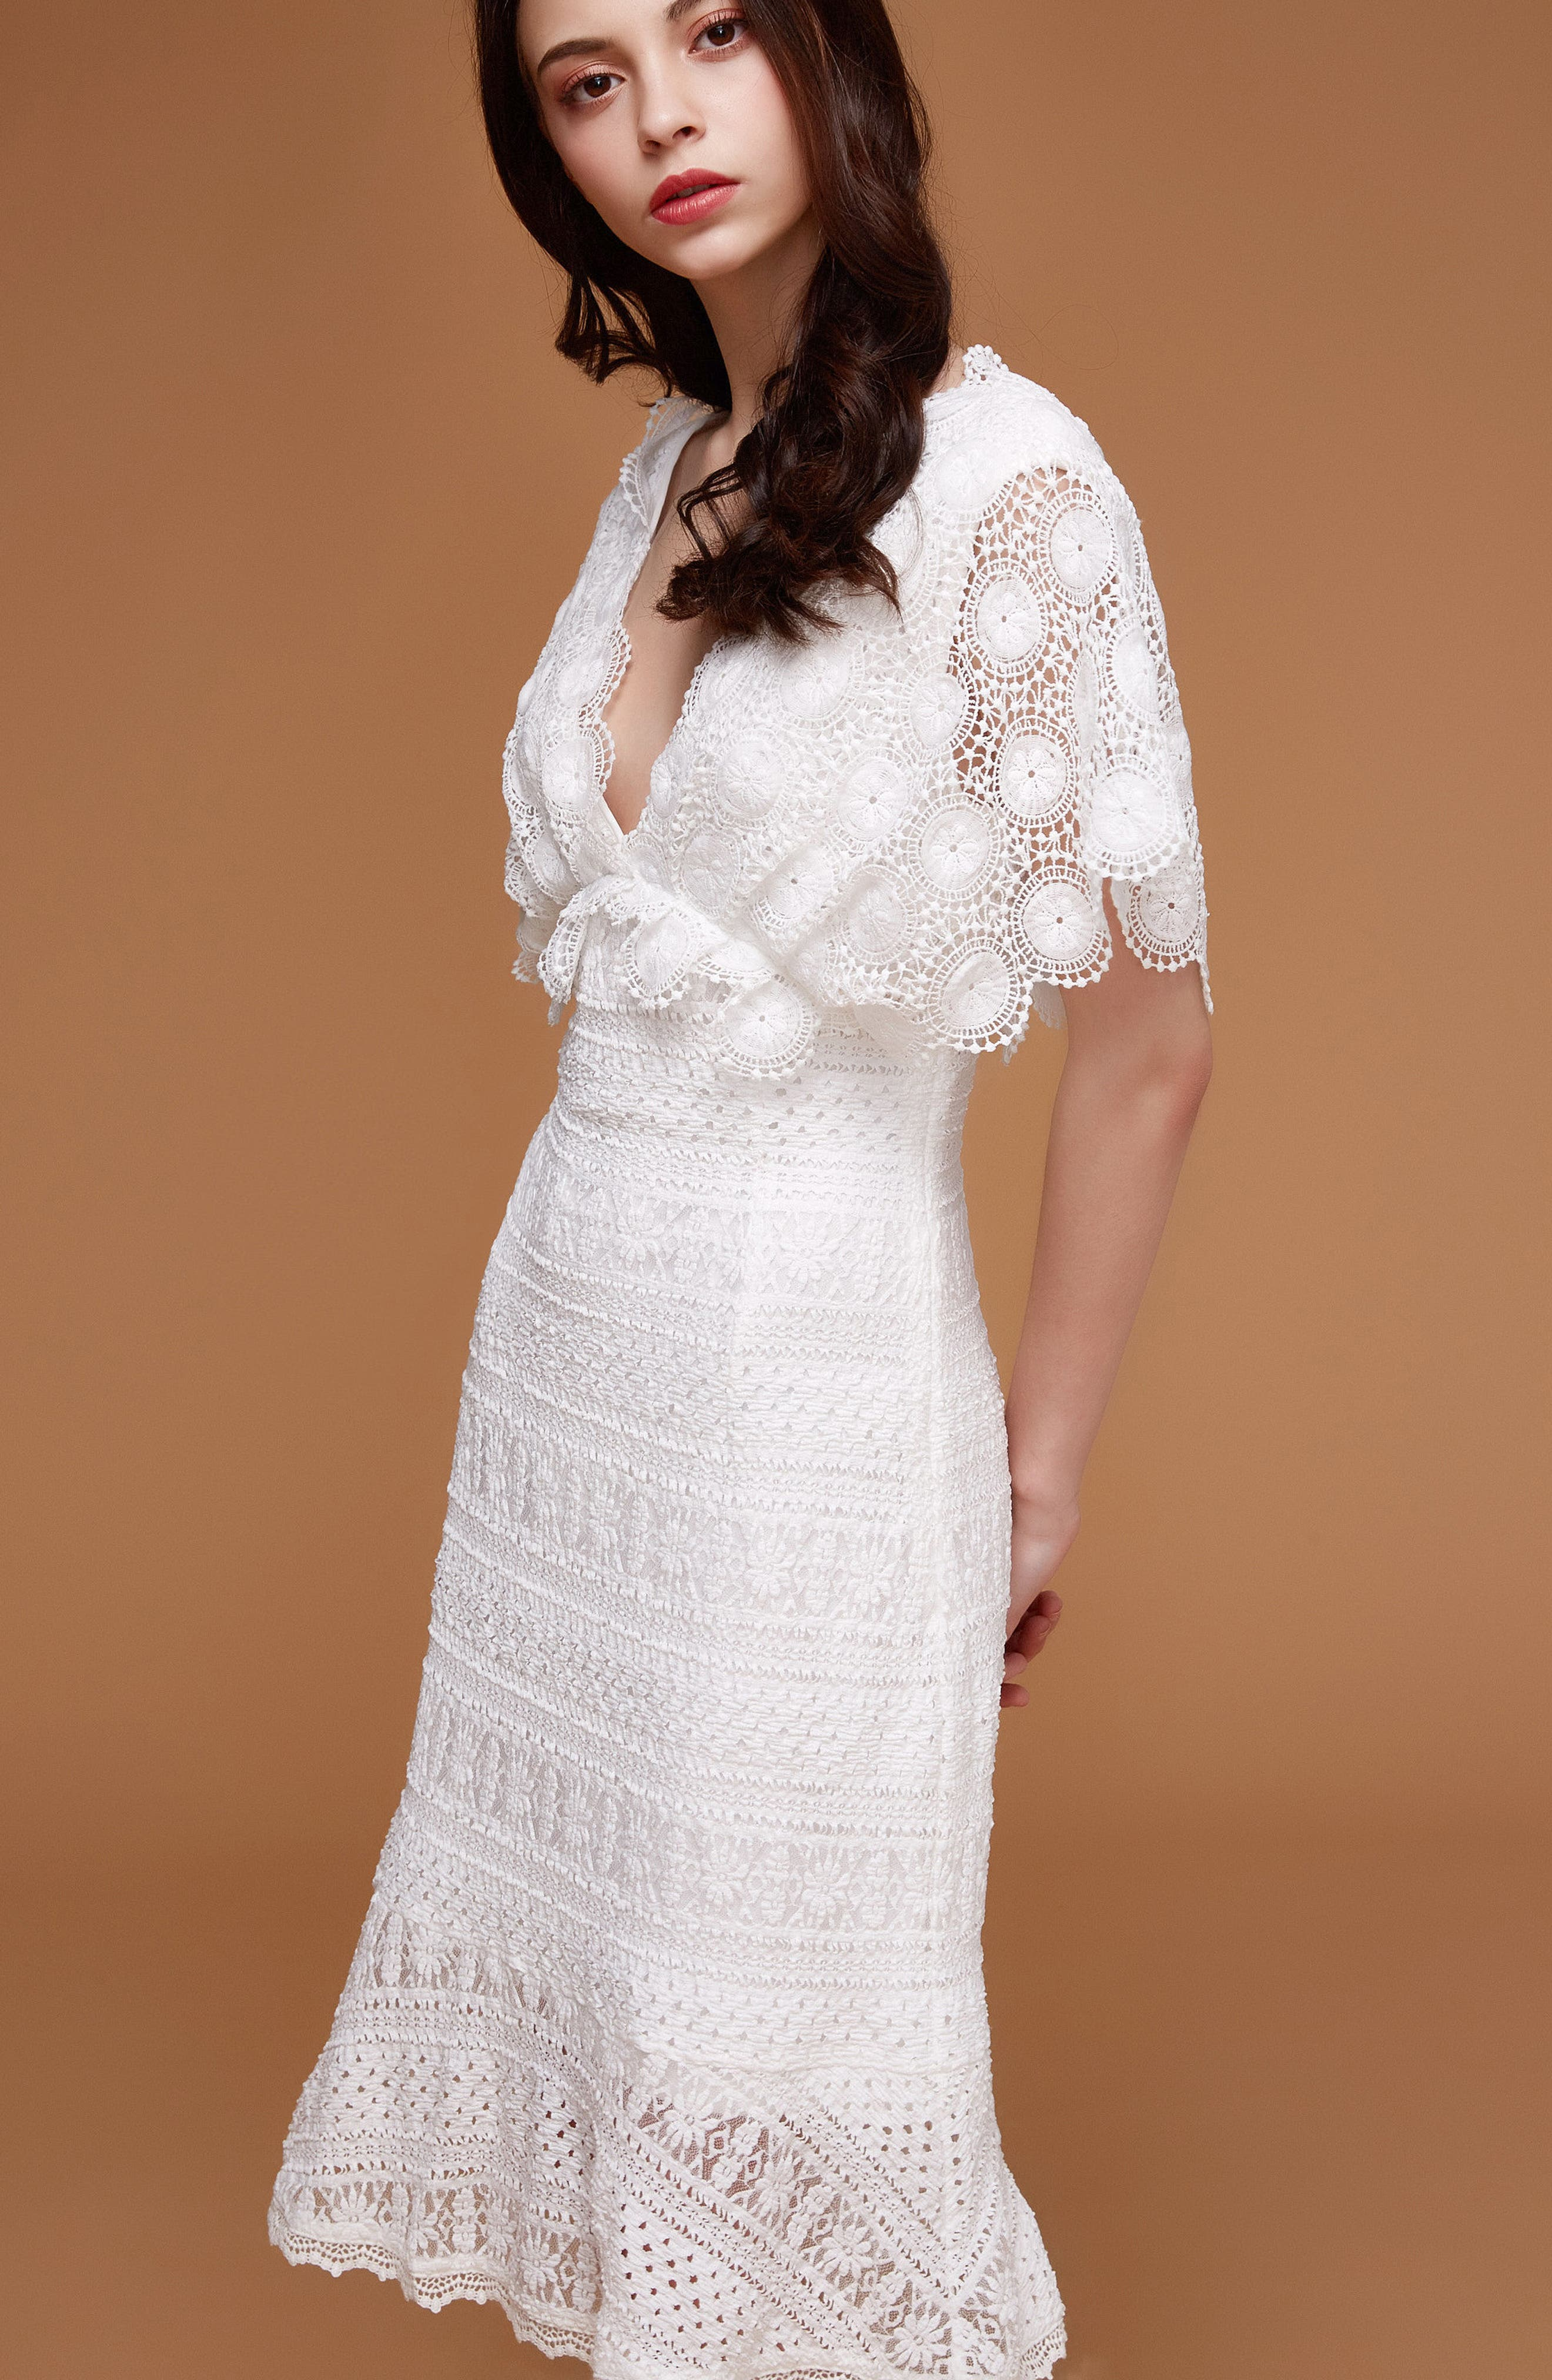 Mavis Scalloped Lace Dress,                             Alternate thumbnail 2, color,                             Off White